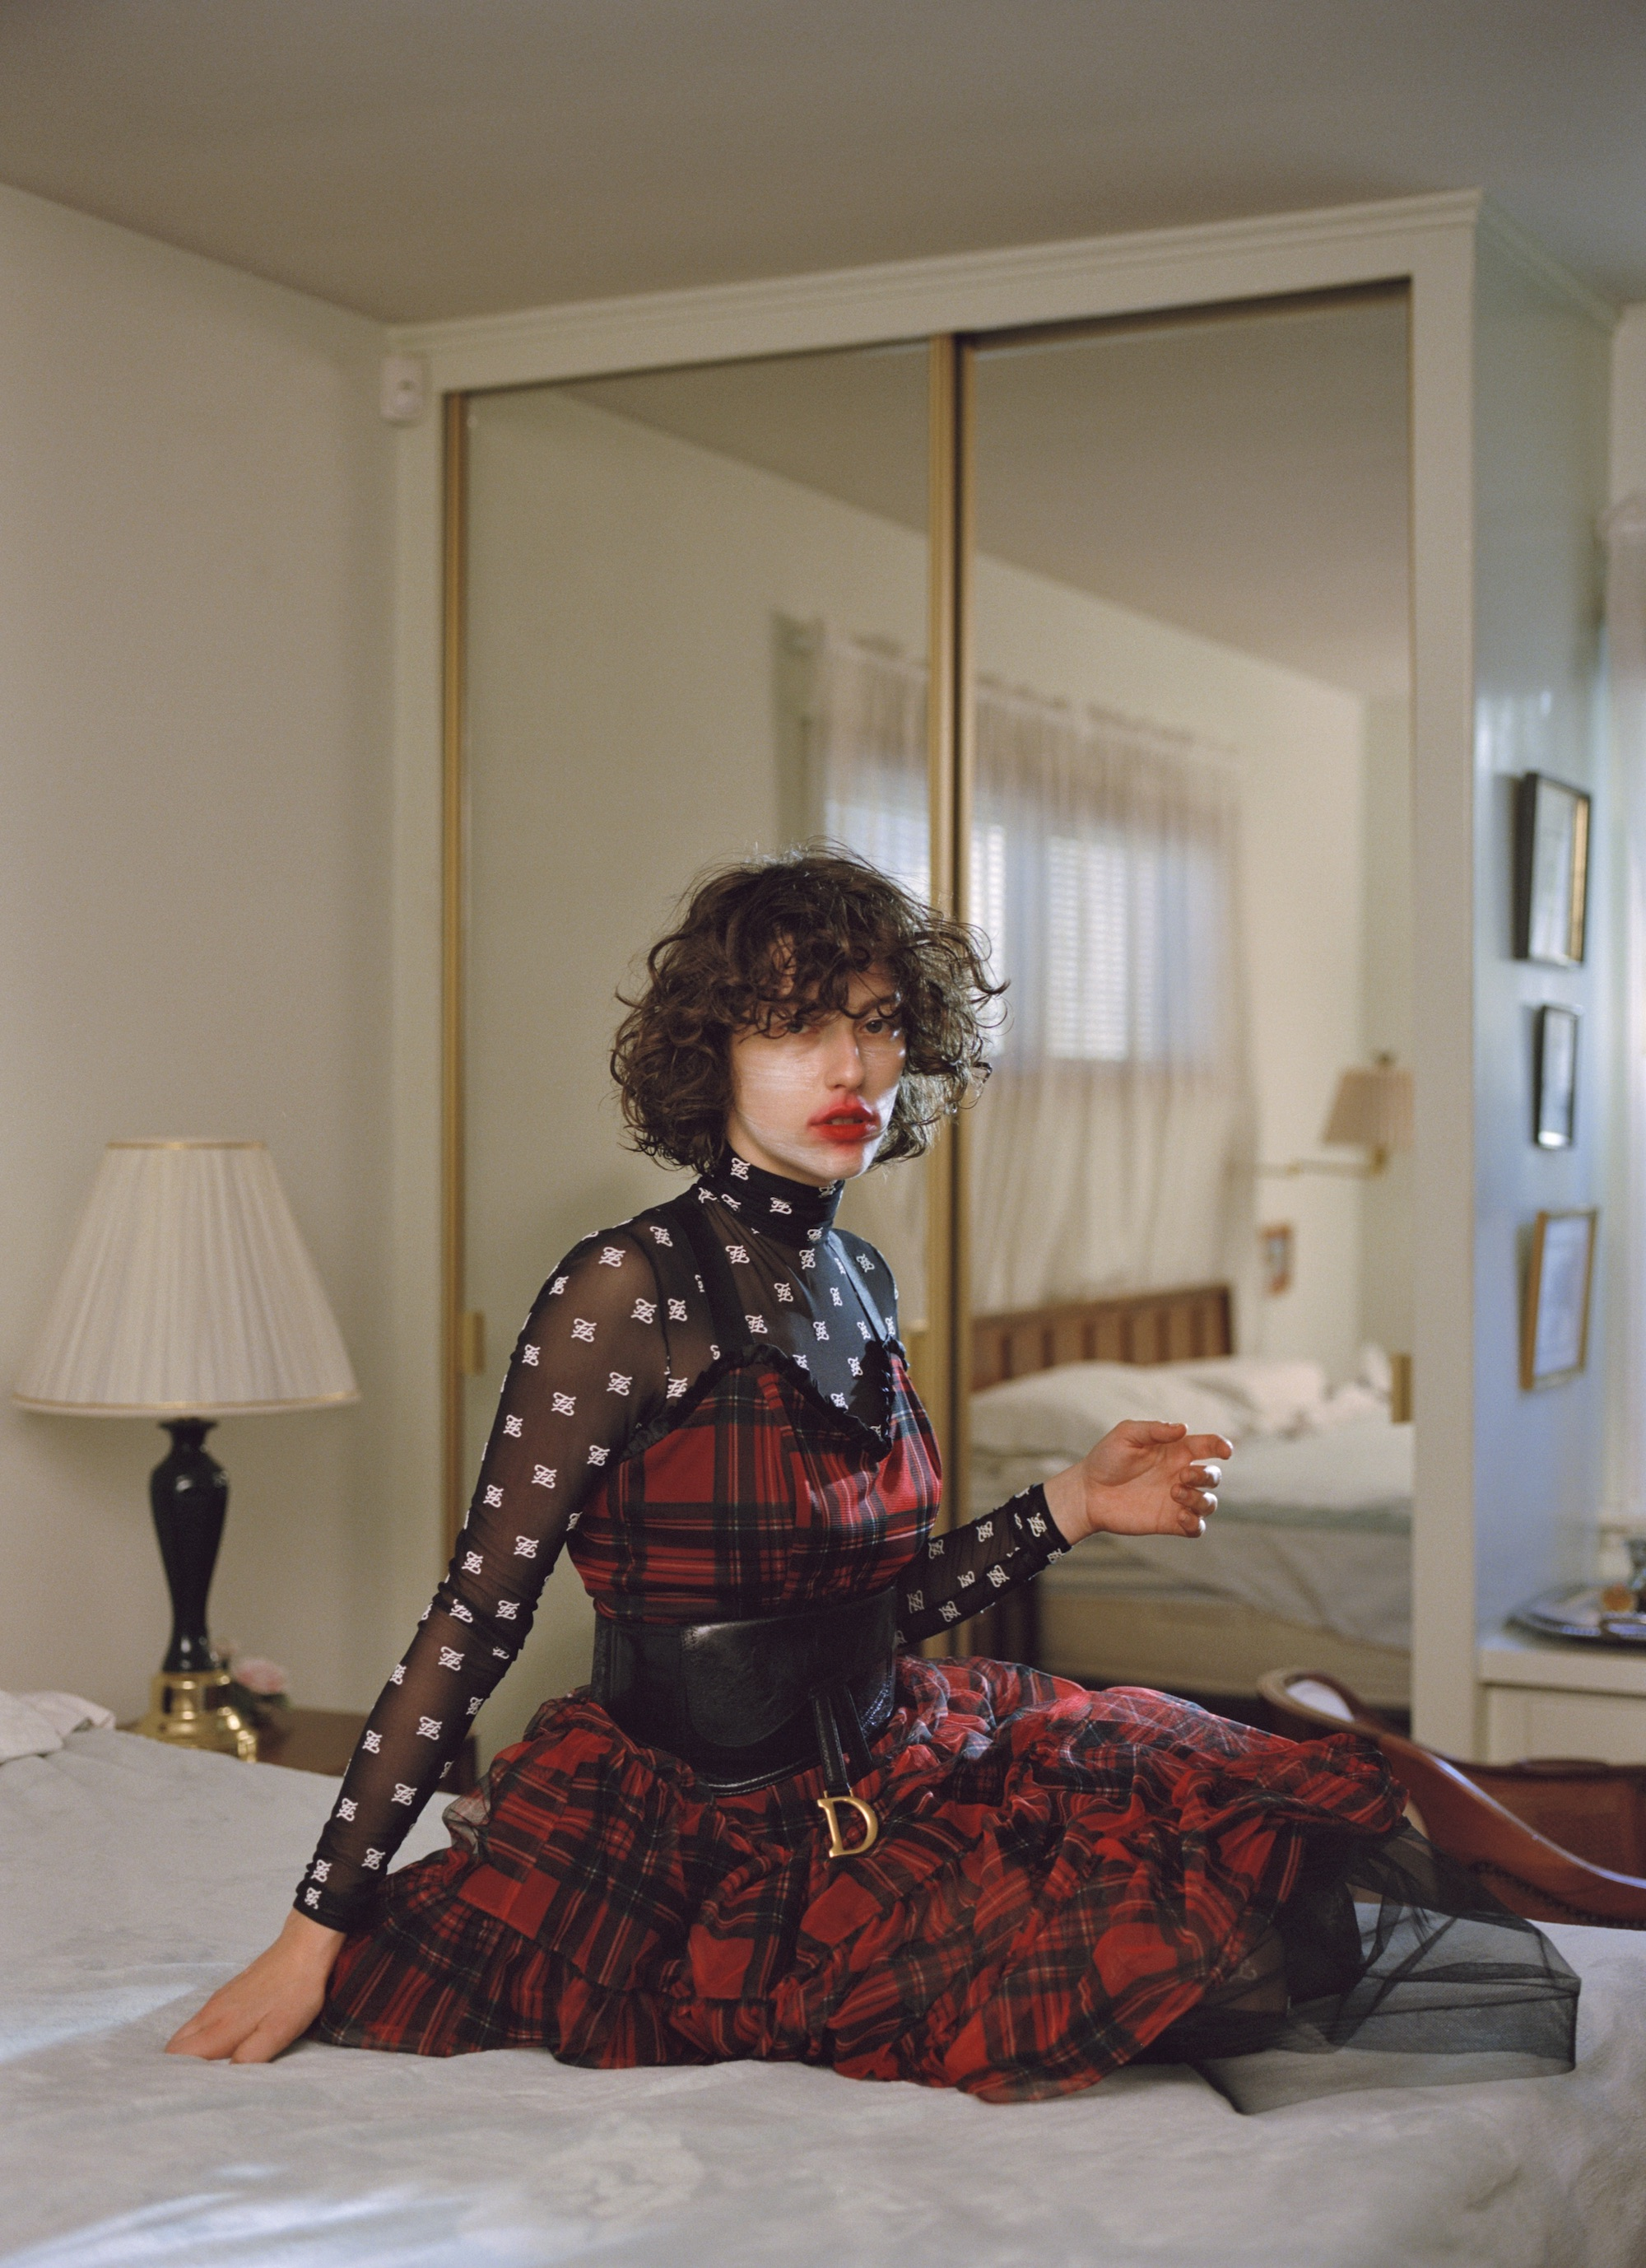 King Princess for the Autumn 19 issue of Wonderland tartan dress